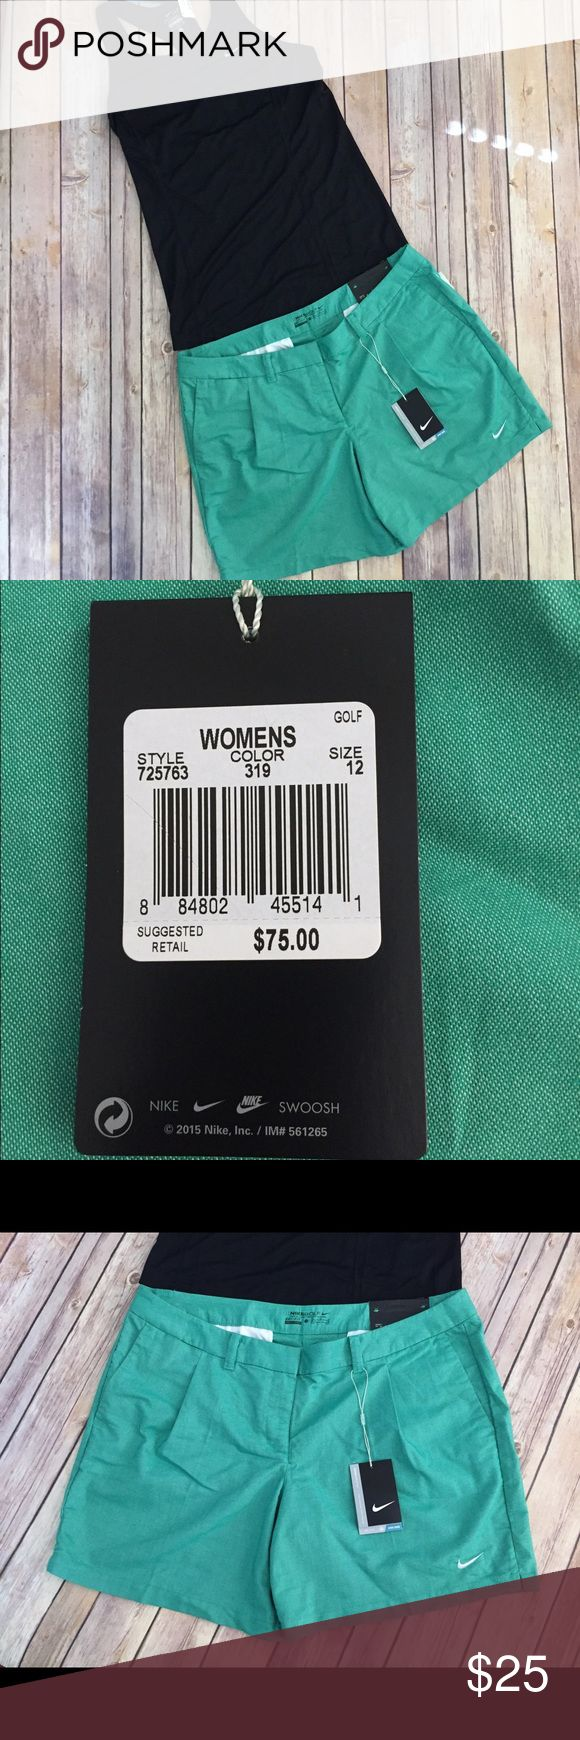 """Nike women's green gold short in SZ 12 New with tags Nike women's green golf shorts in SZ 12. 6""""inseam. Nike Shorts Skorts"""